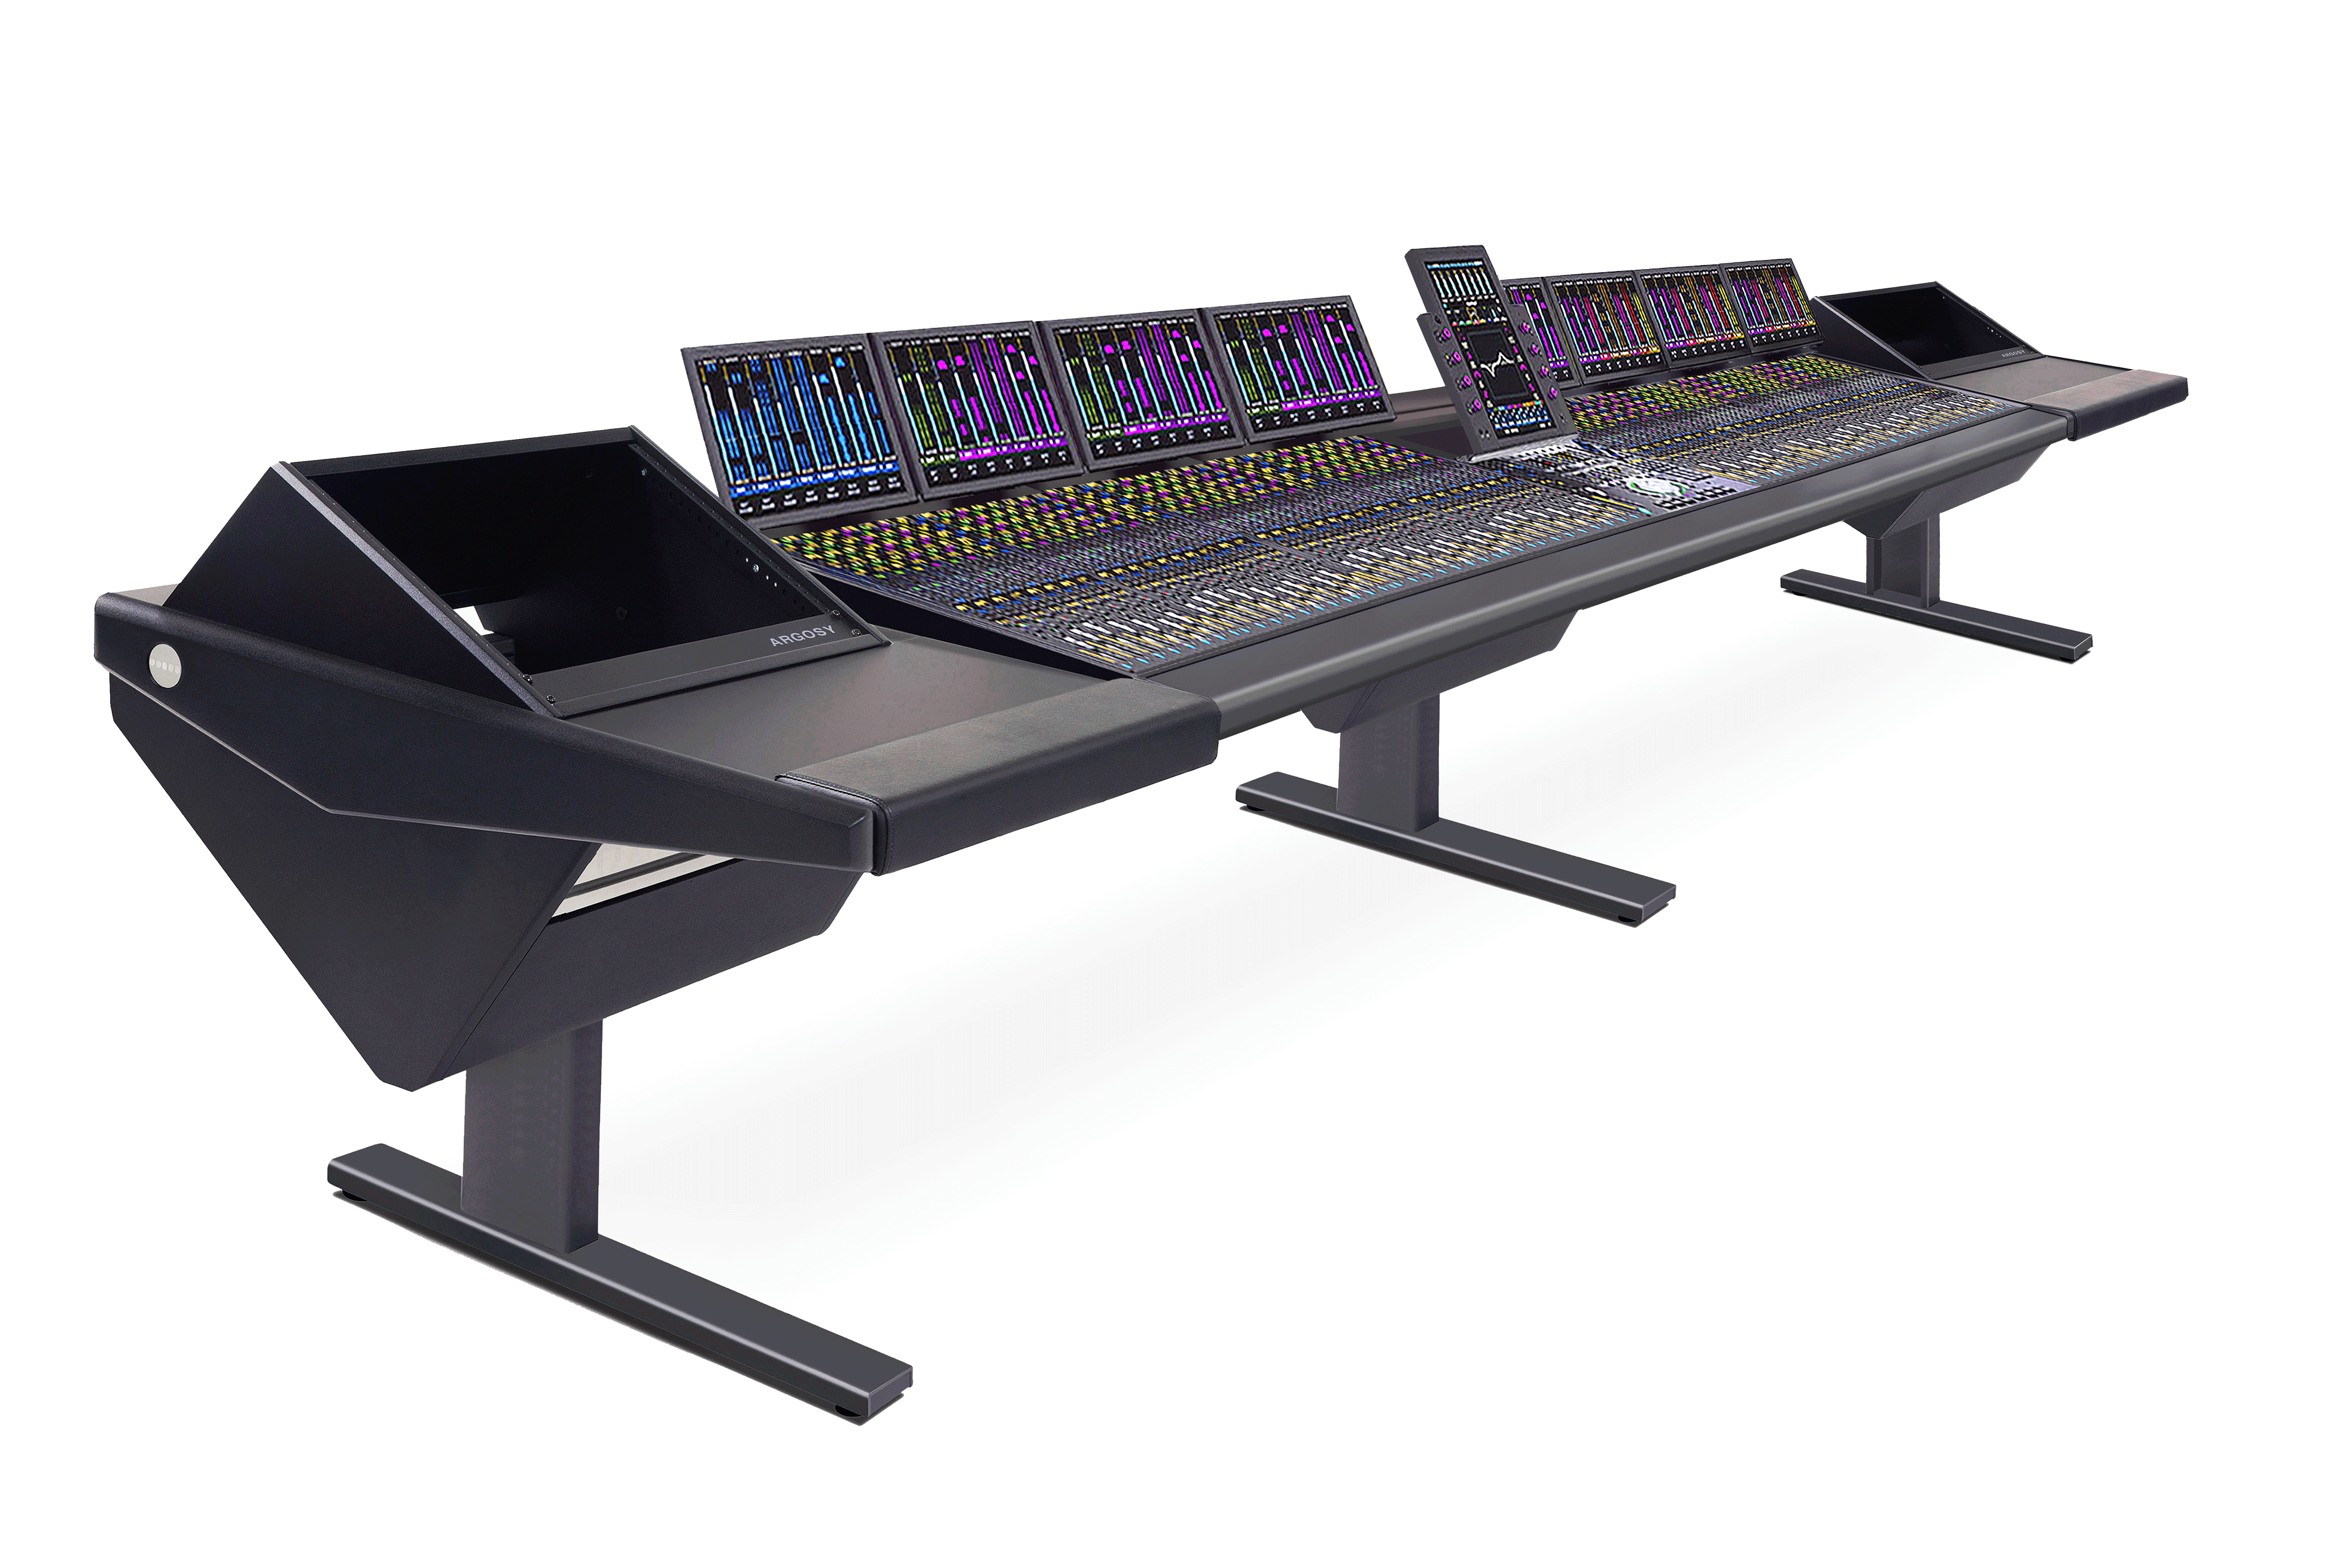 64 Fader System with Rack (L) and Rack (R)